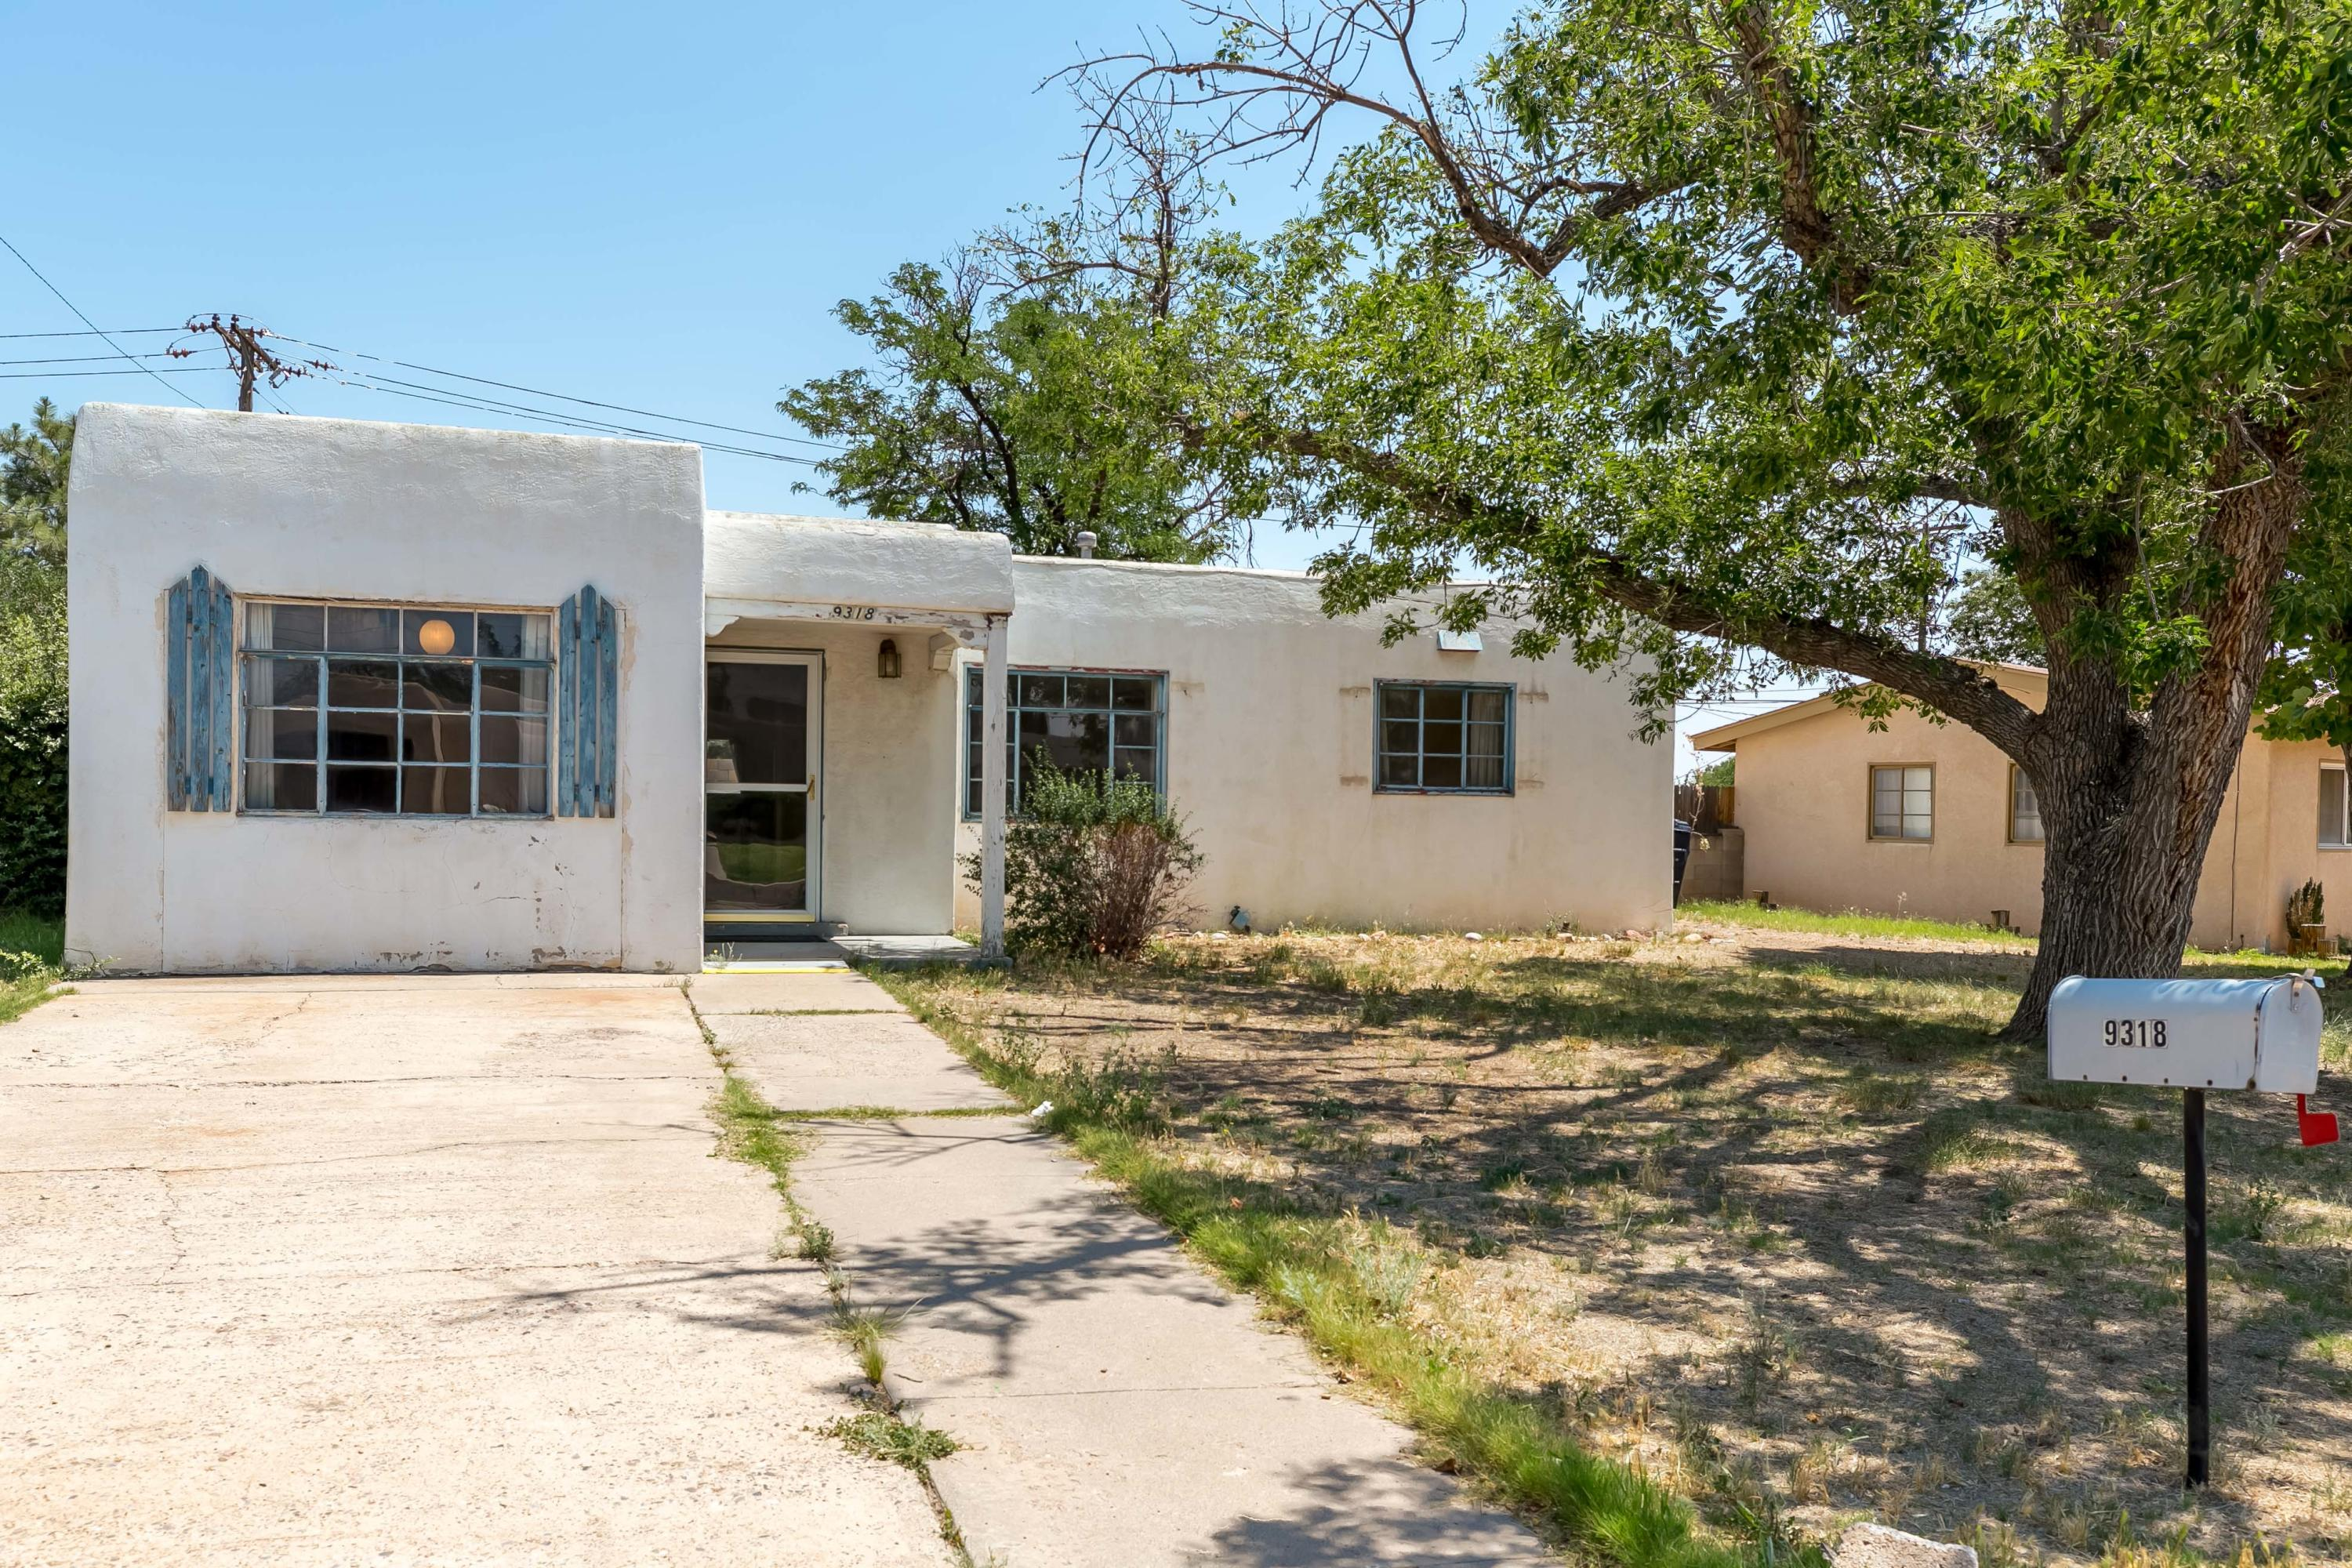 Classic 3 bedroom/2 bath home on large lot in Eldorado School District. Garage conversion allows for two separate living spaces.  Many original features including metal cabinets vintage fixtures.  Refrigerated air system!  Home is part of an estate sale and being sold as it.